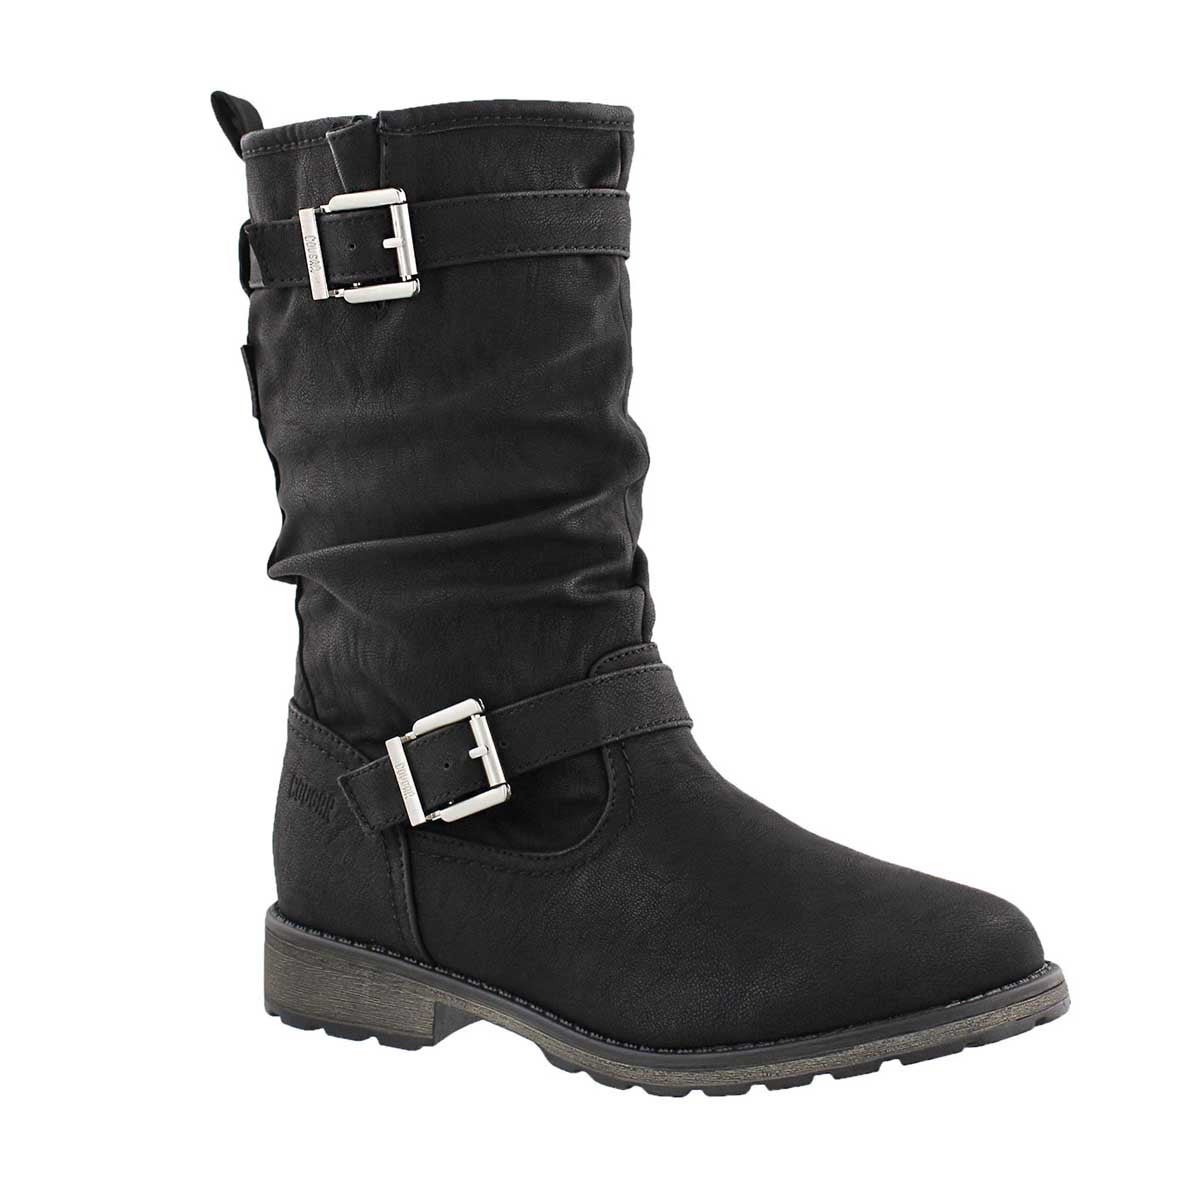 Girls' NOTA black waterproof casual boots